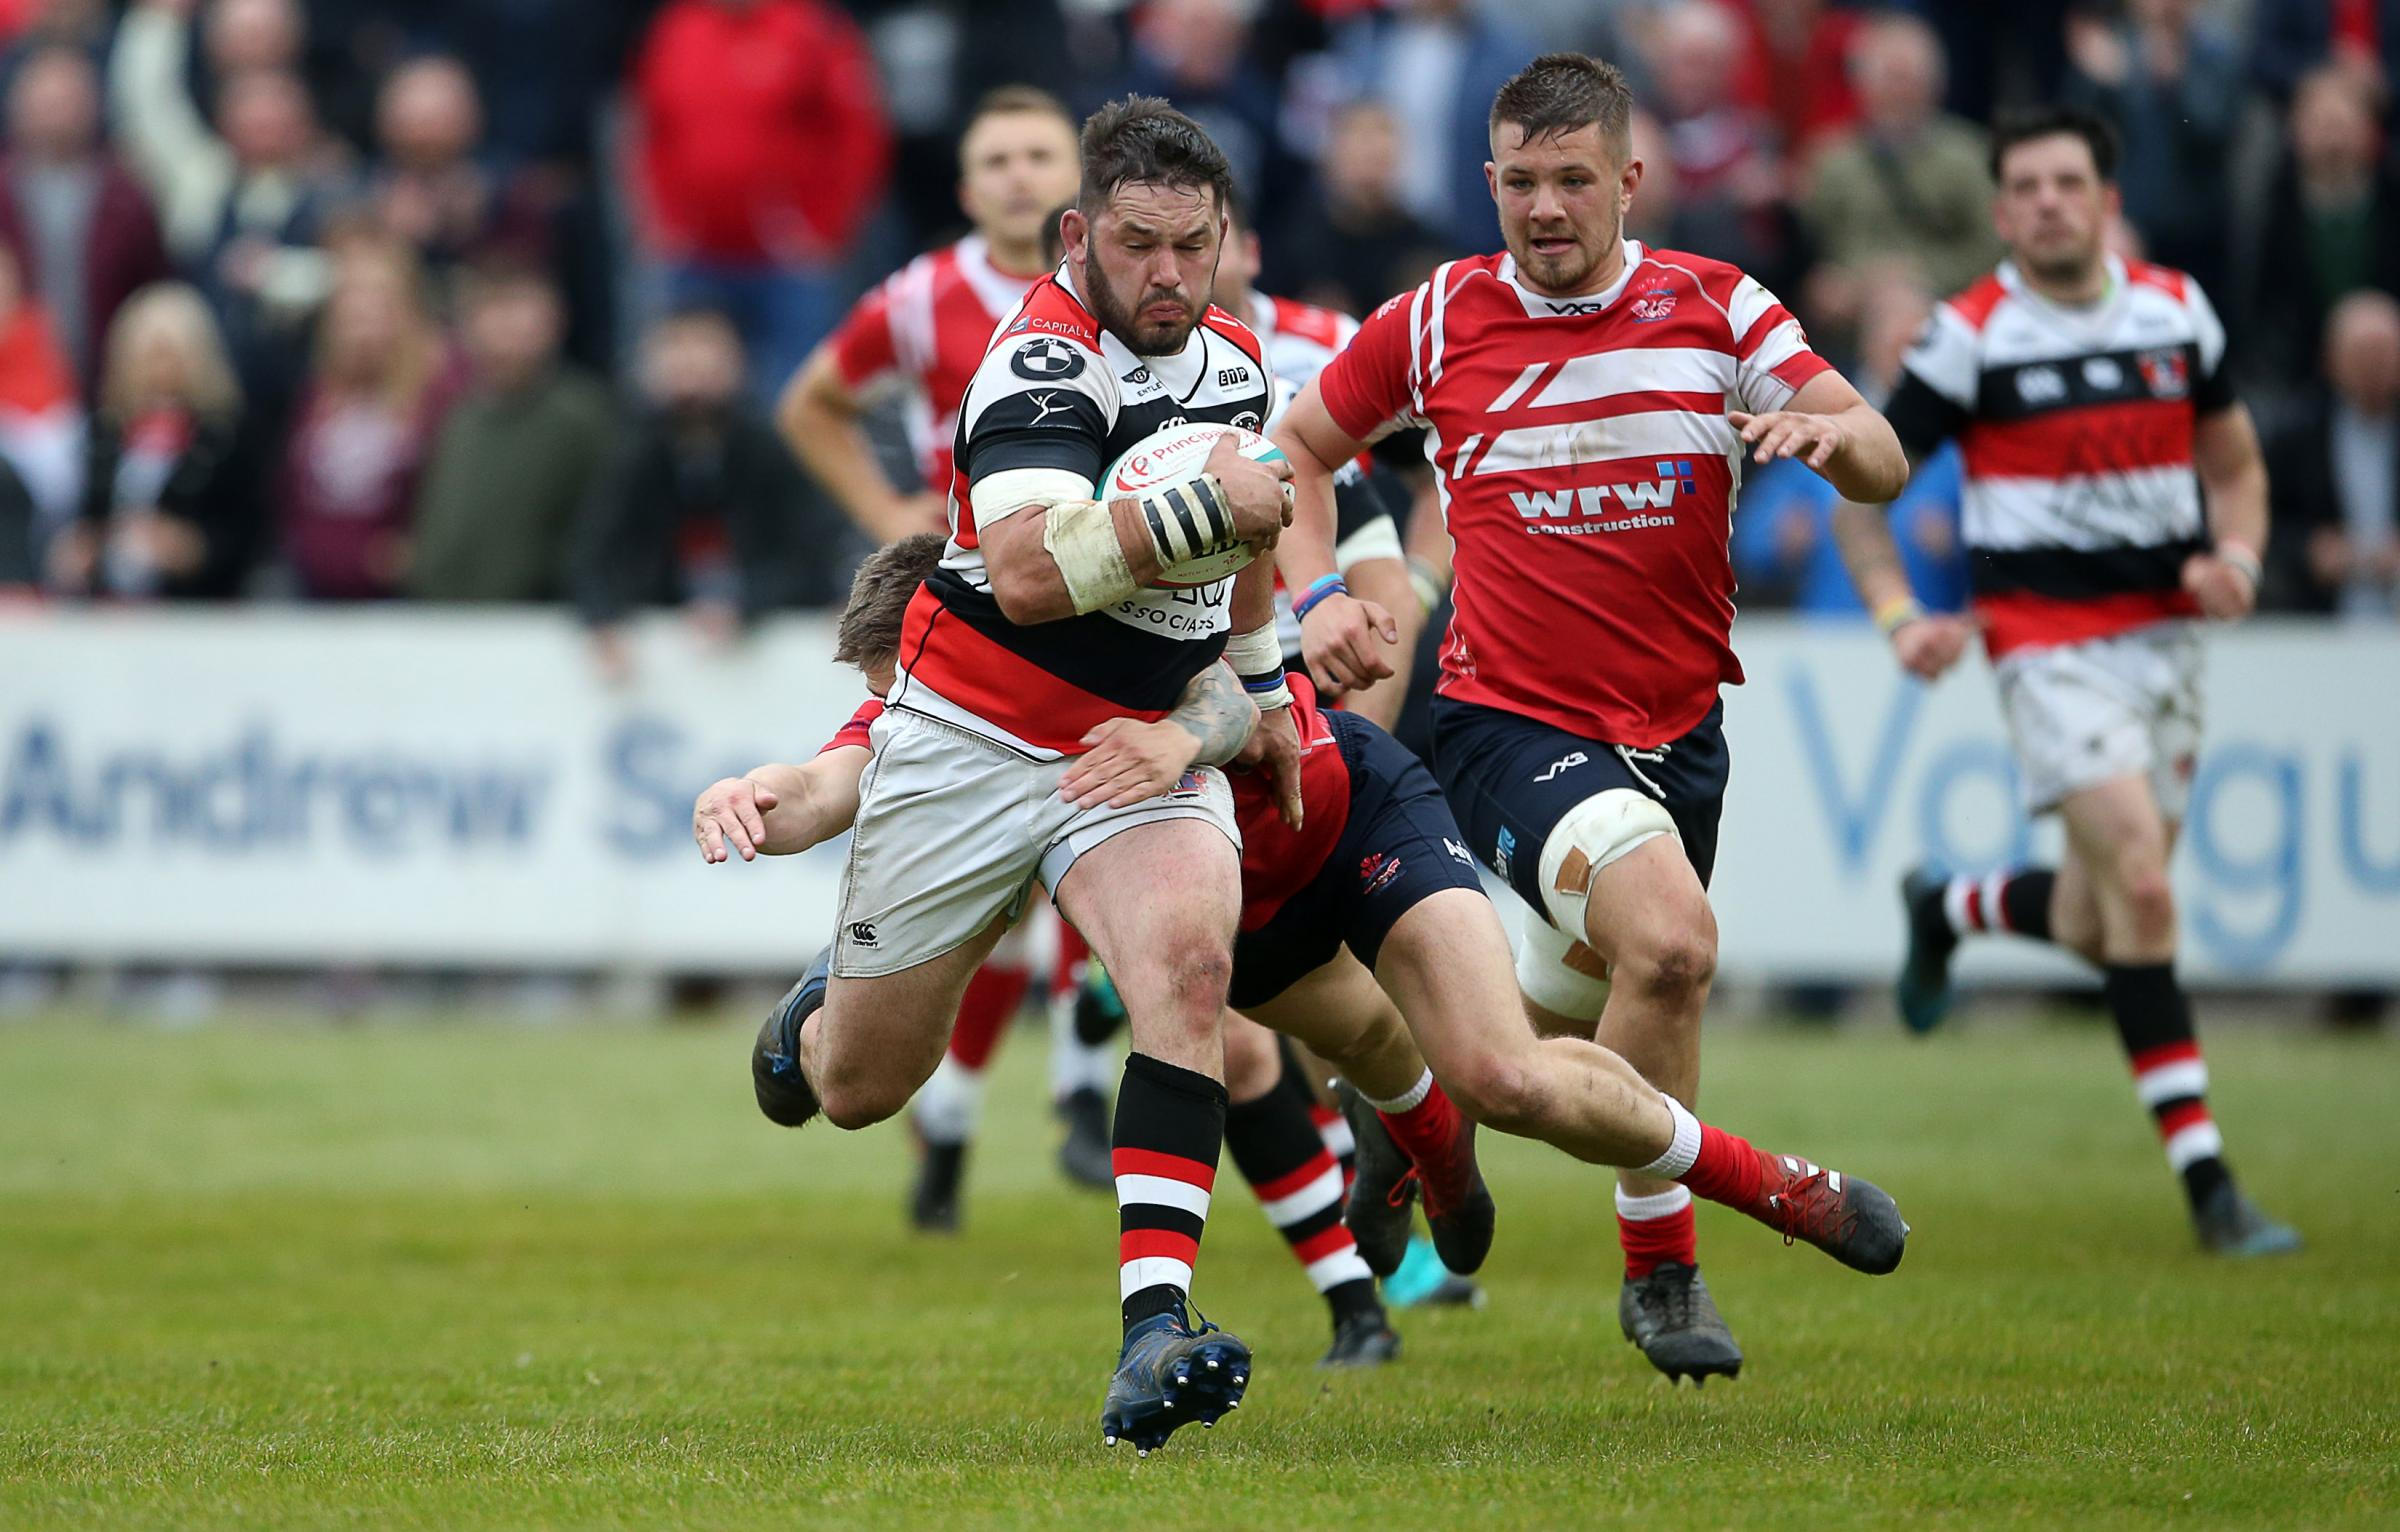 ON THE CHARGE: Pooler's Darren Hughes surges for the try line. Picture: Huw Evans Agency